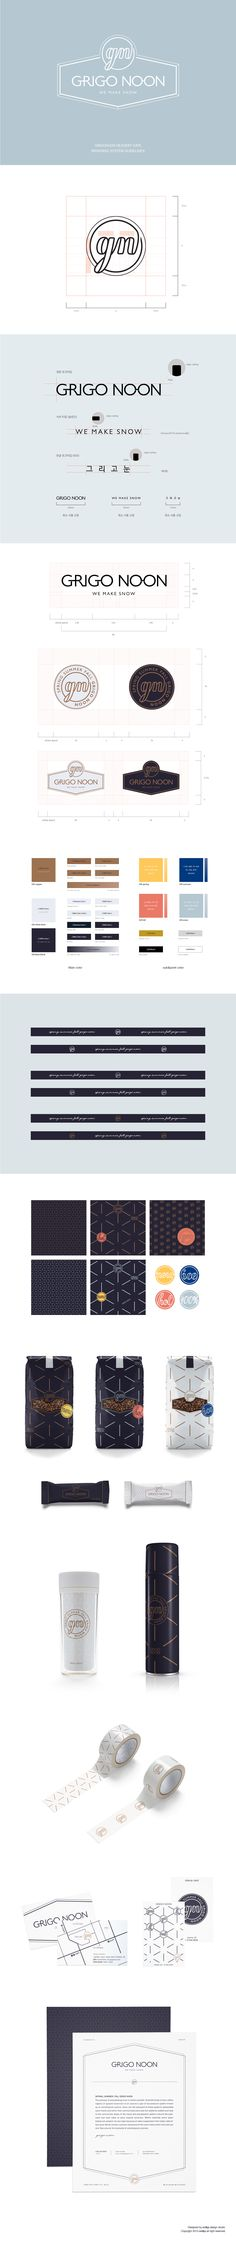 grigonoon dessert cafe branding system guidelines on Behance